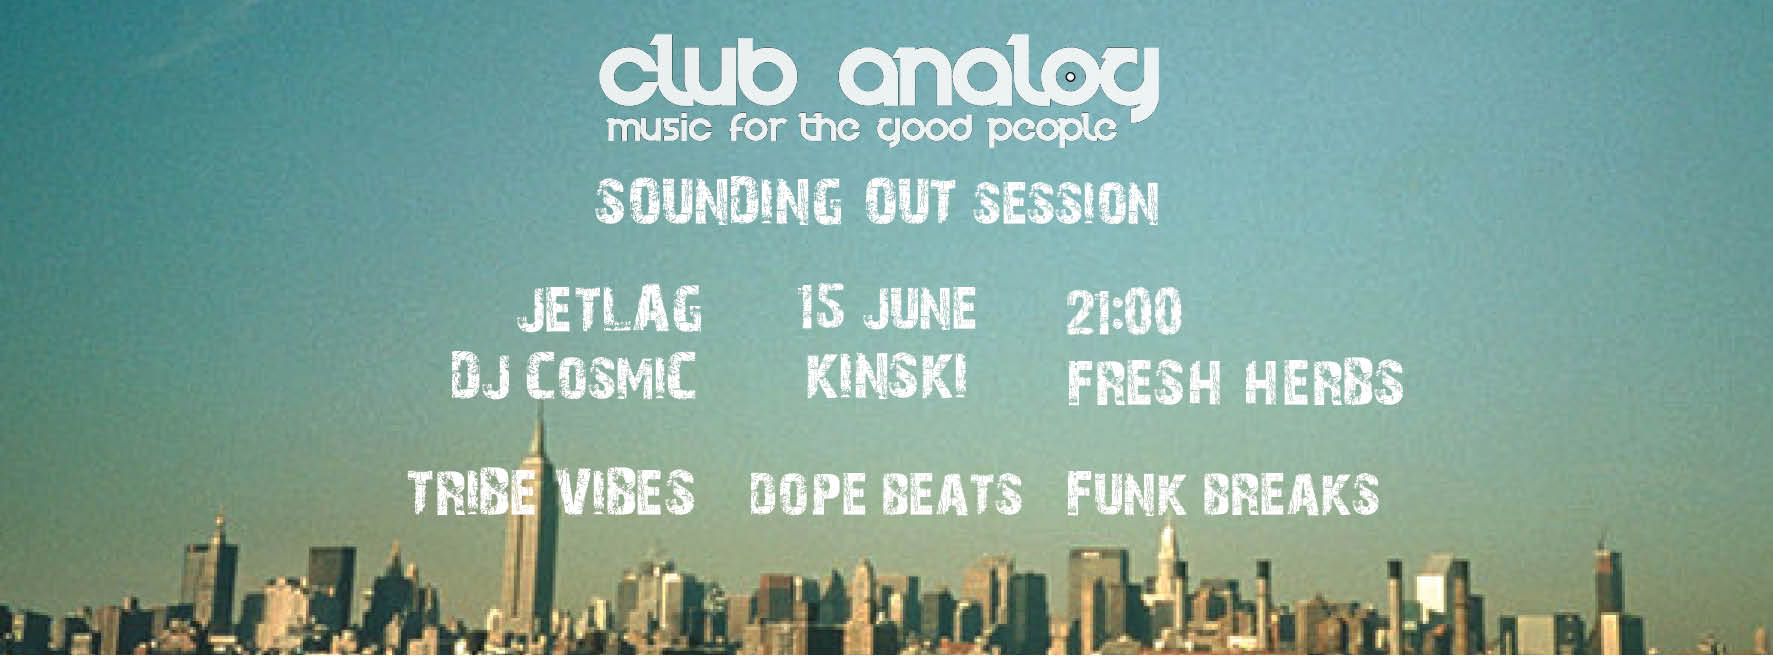 CLUB ANALOG Sounding Out Session